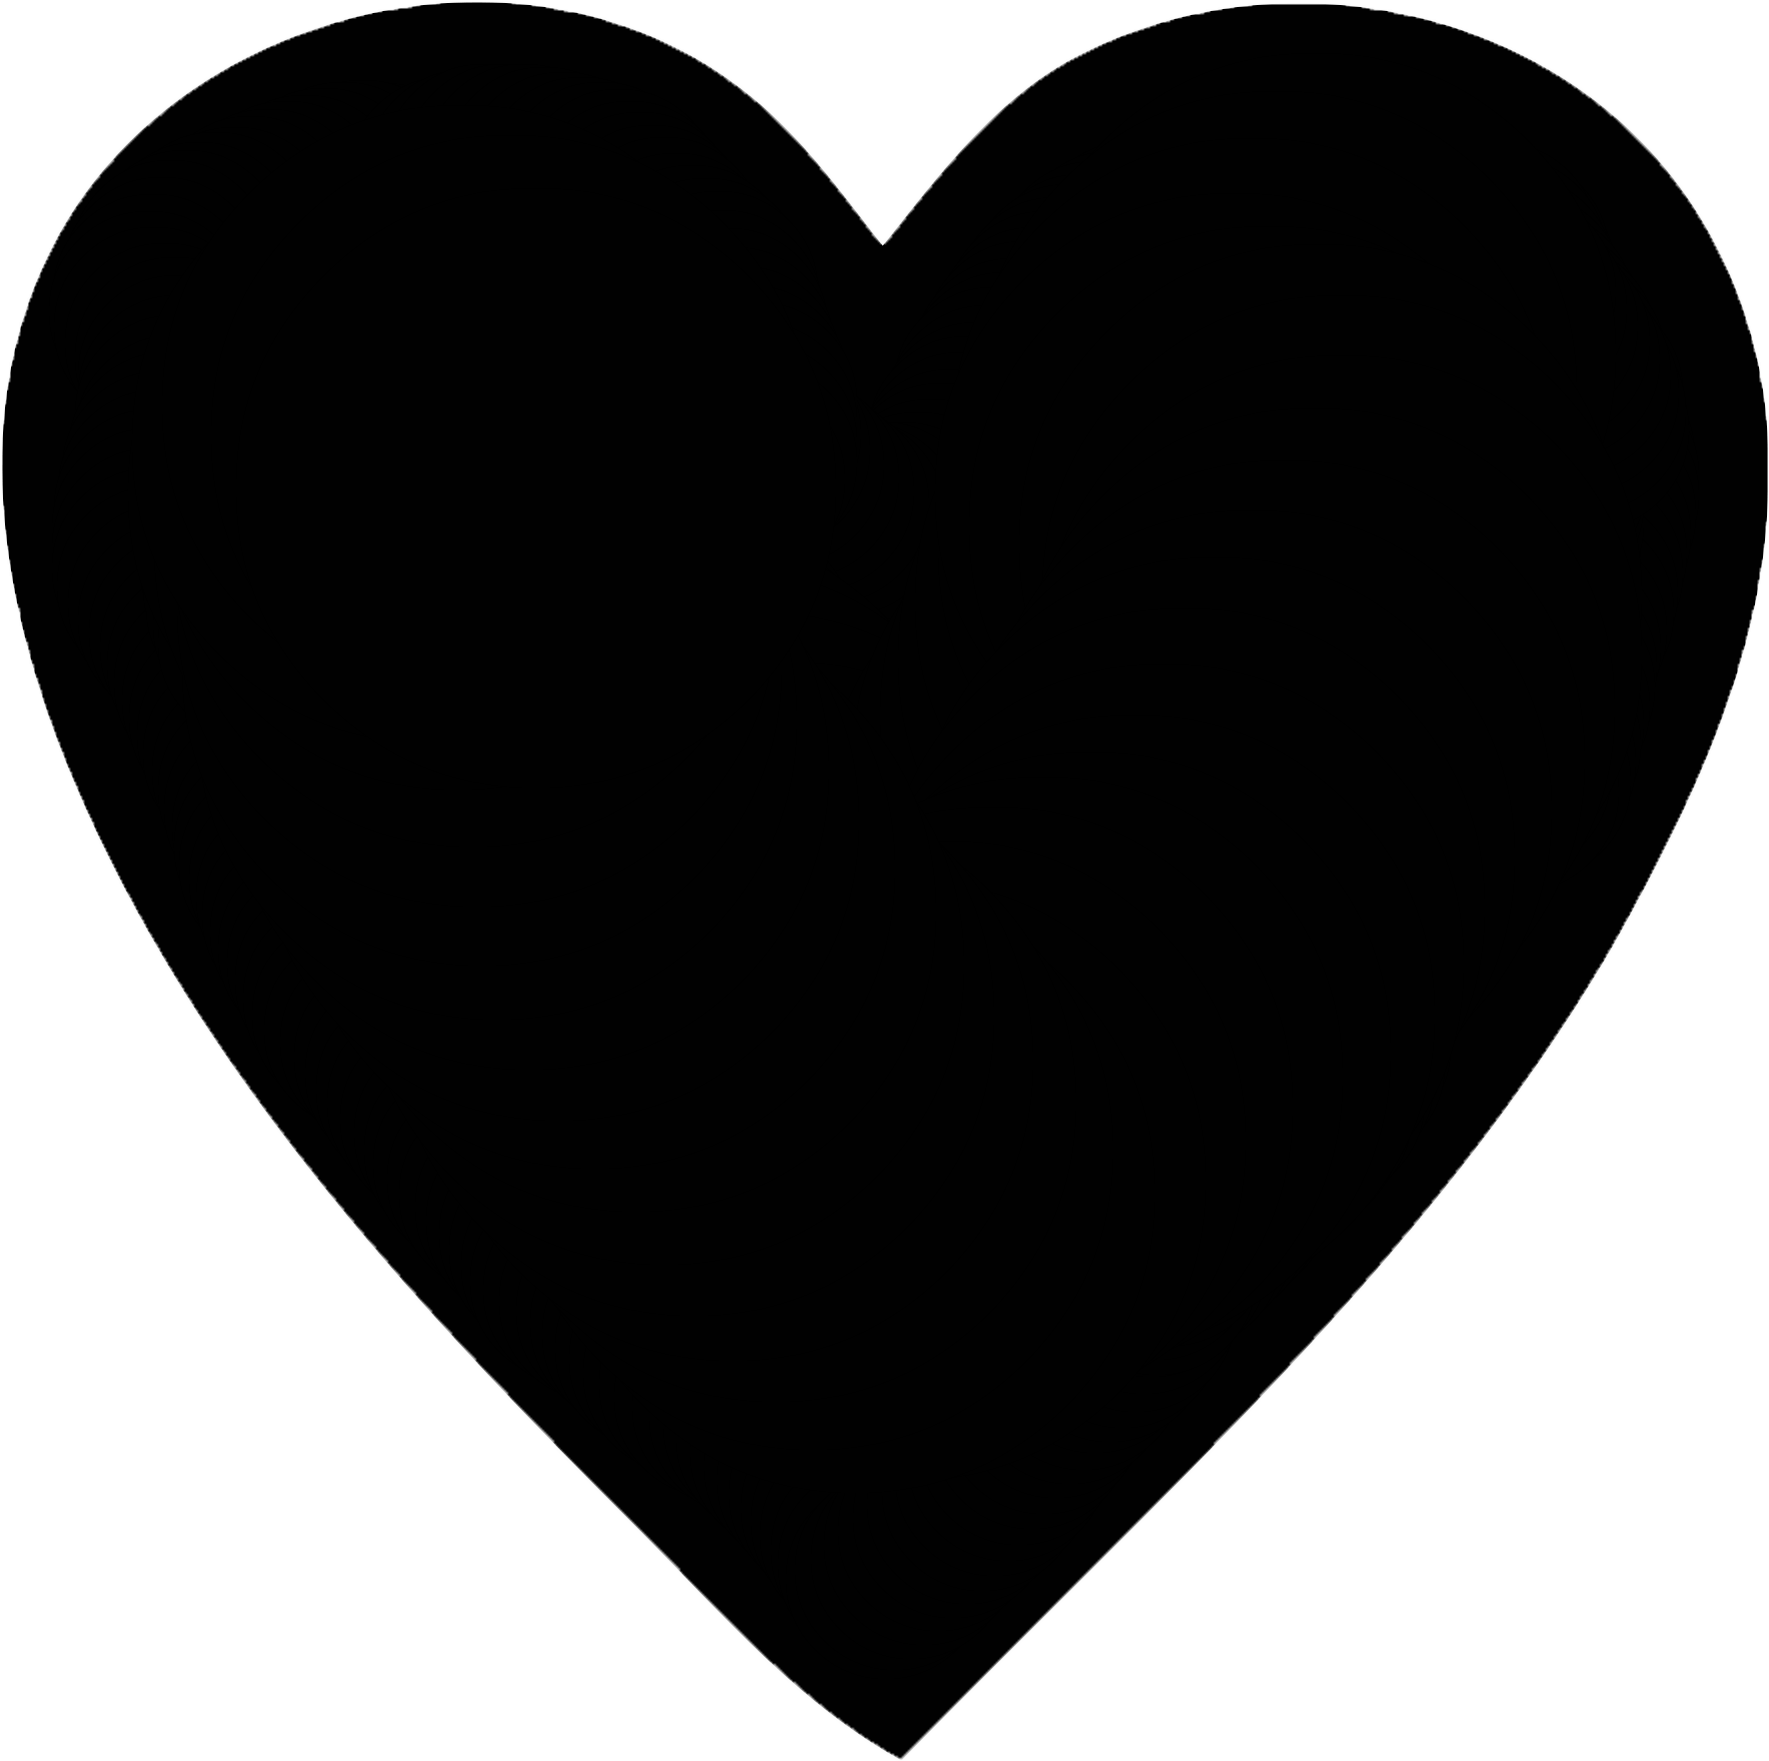 Download Transparent Black Hearts Tumblr Black Heart Full Size